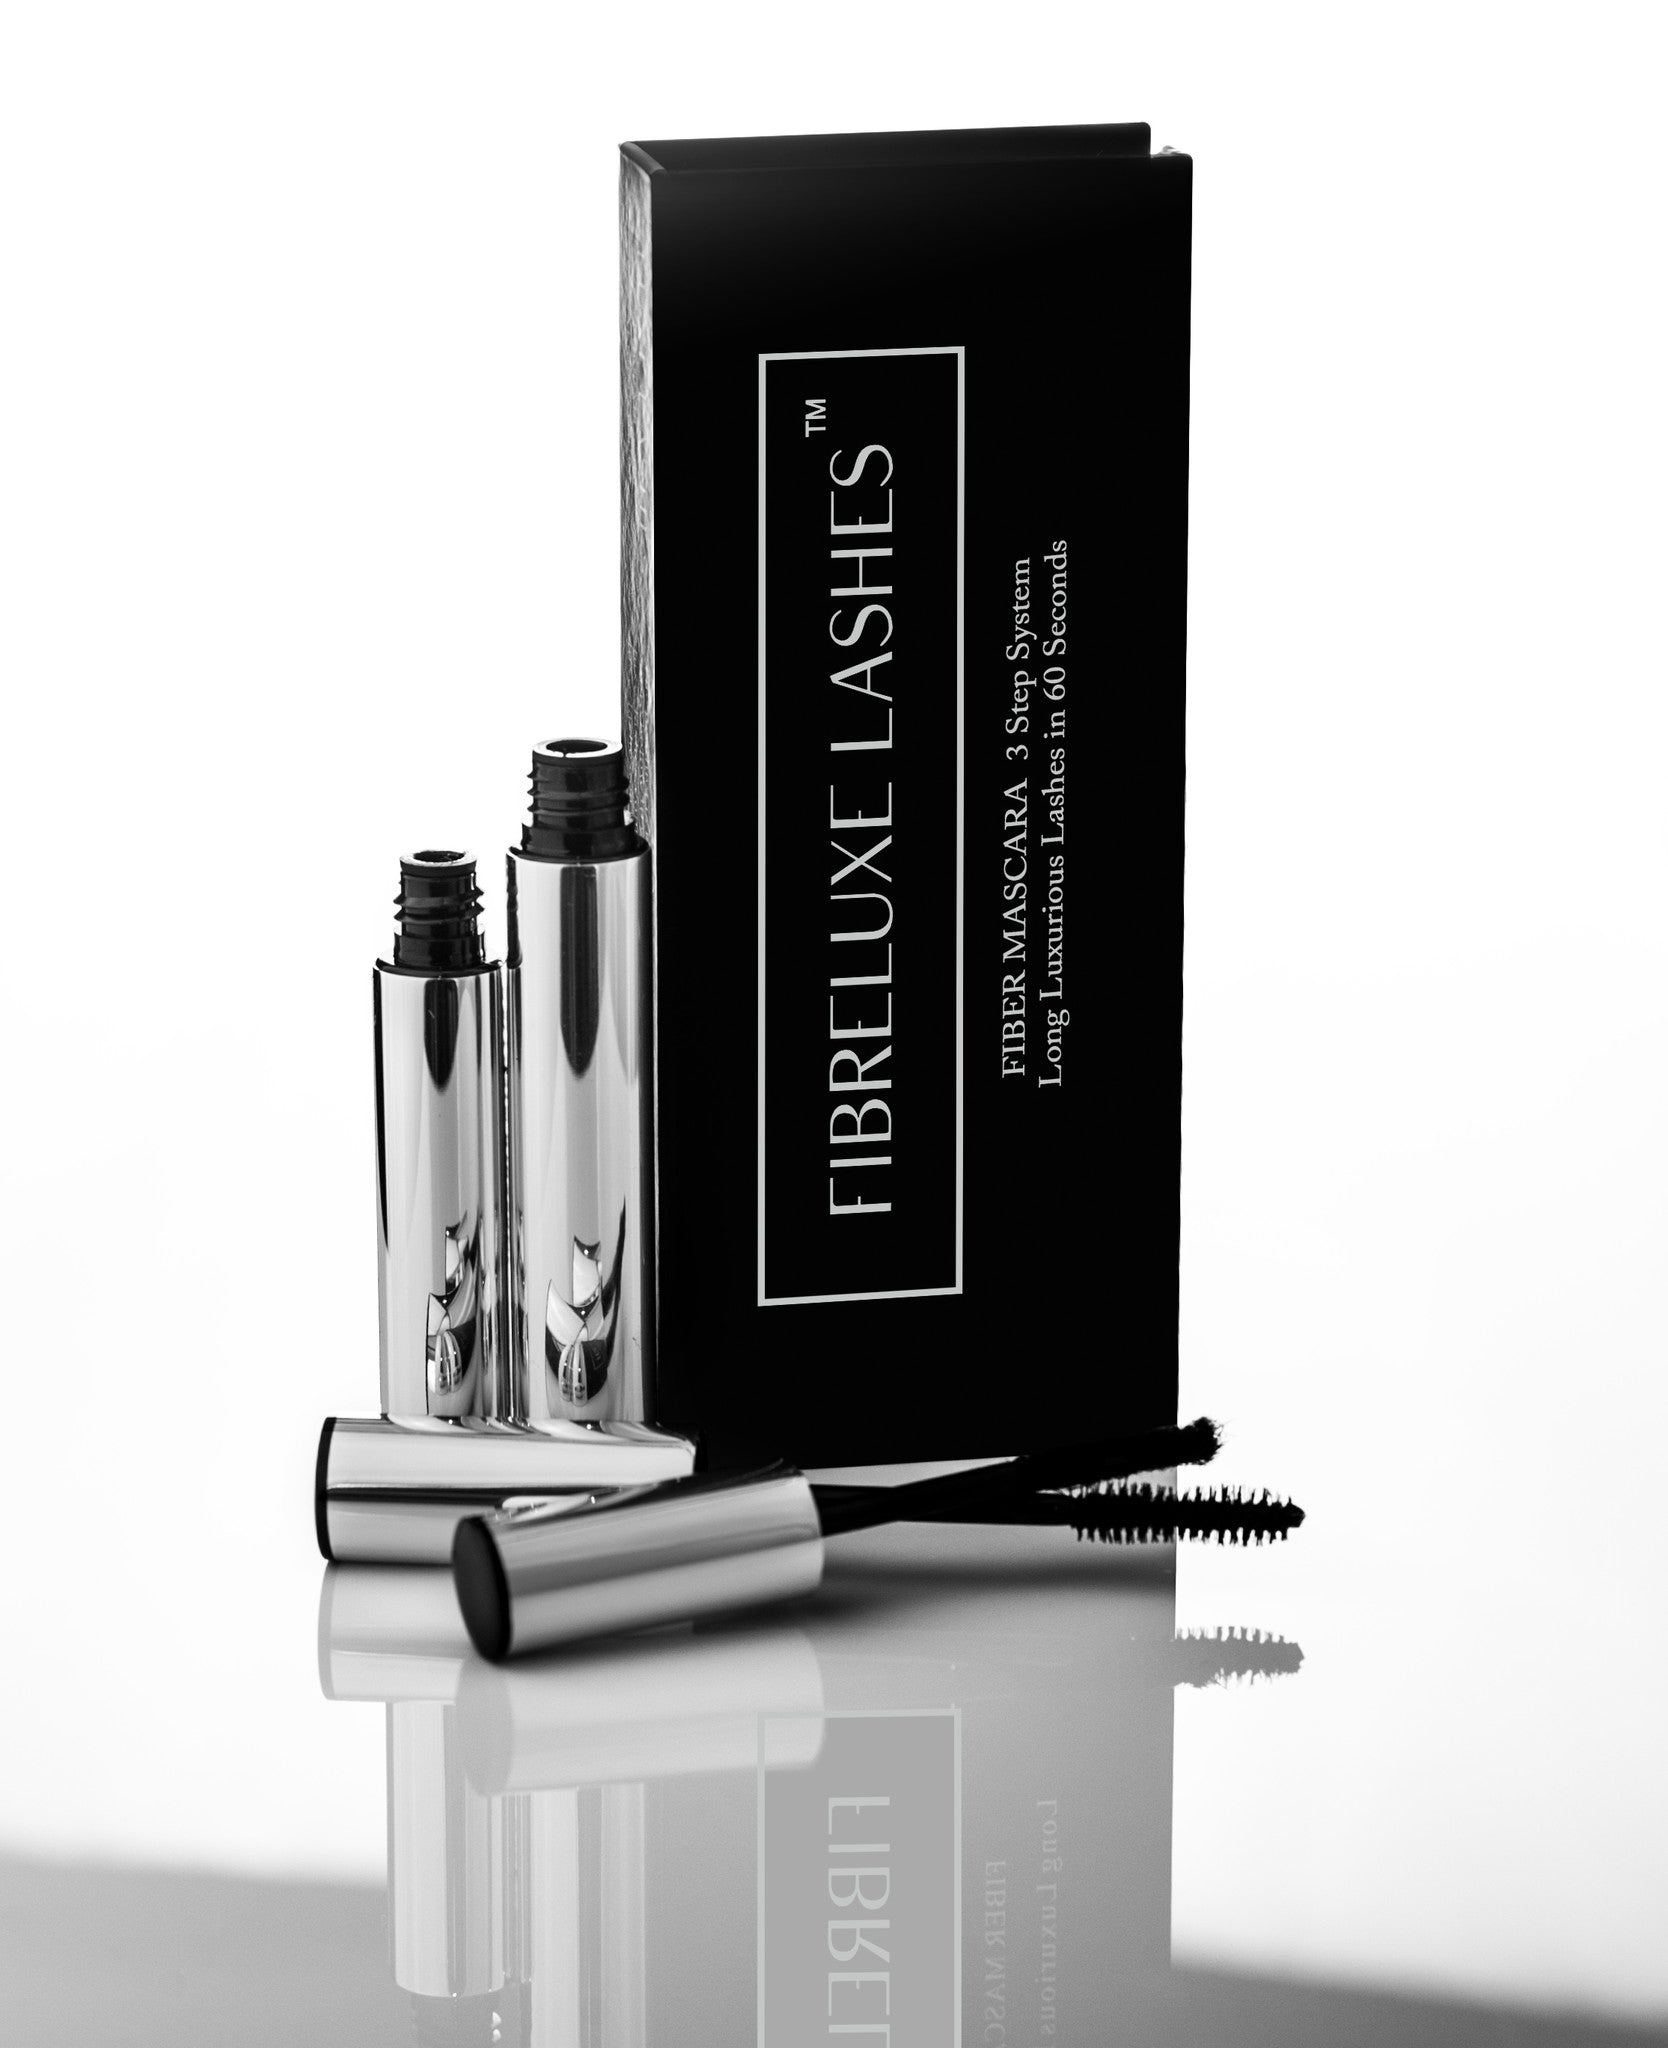 fibreluxe lashes, fiber luxe, fiber mascara, mascara, waterproof mascara, water resistant mascara, black mascara, best mascara, long lashes, false lashes, strip lashes, makeup, beauty, mua, love lashes